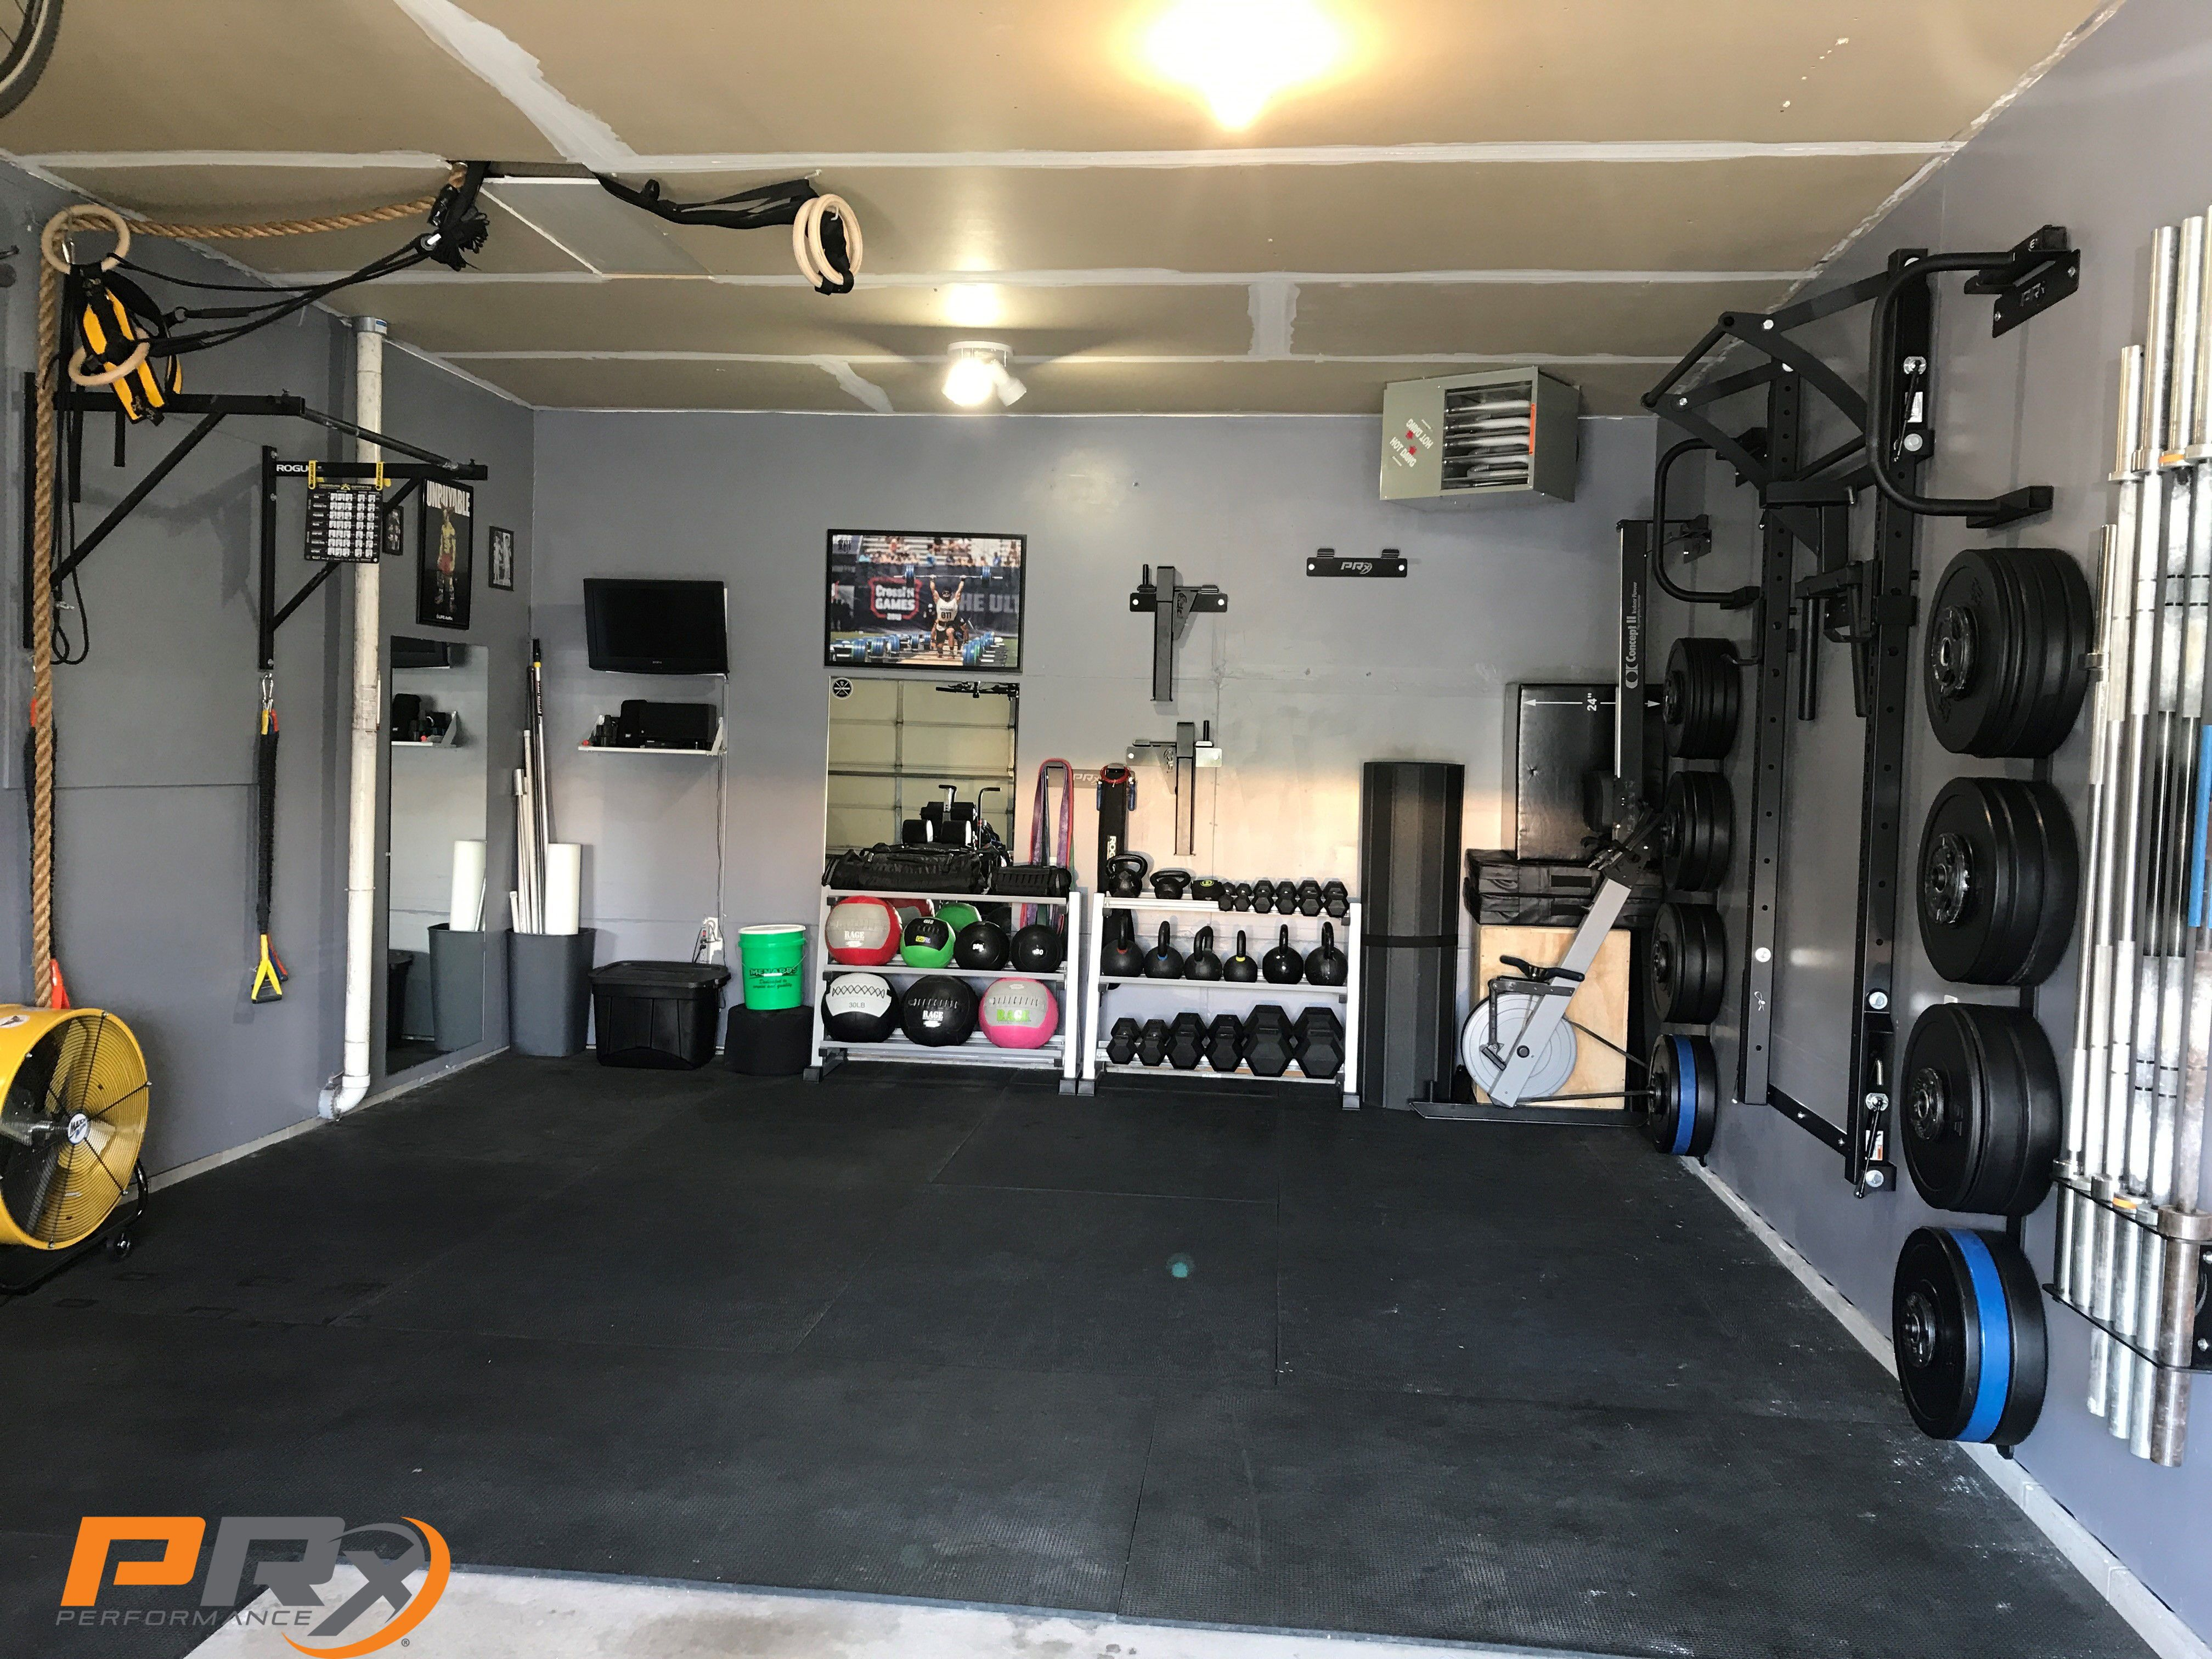 Make Your Home Gym Feel Like Exactly That Home Gym Room At Home Home Gym Decor Home Gym Design